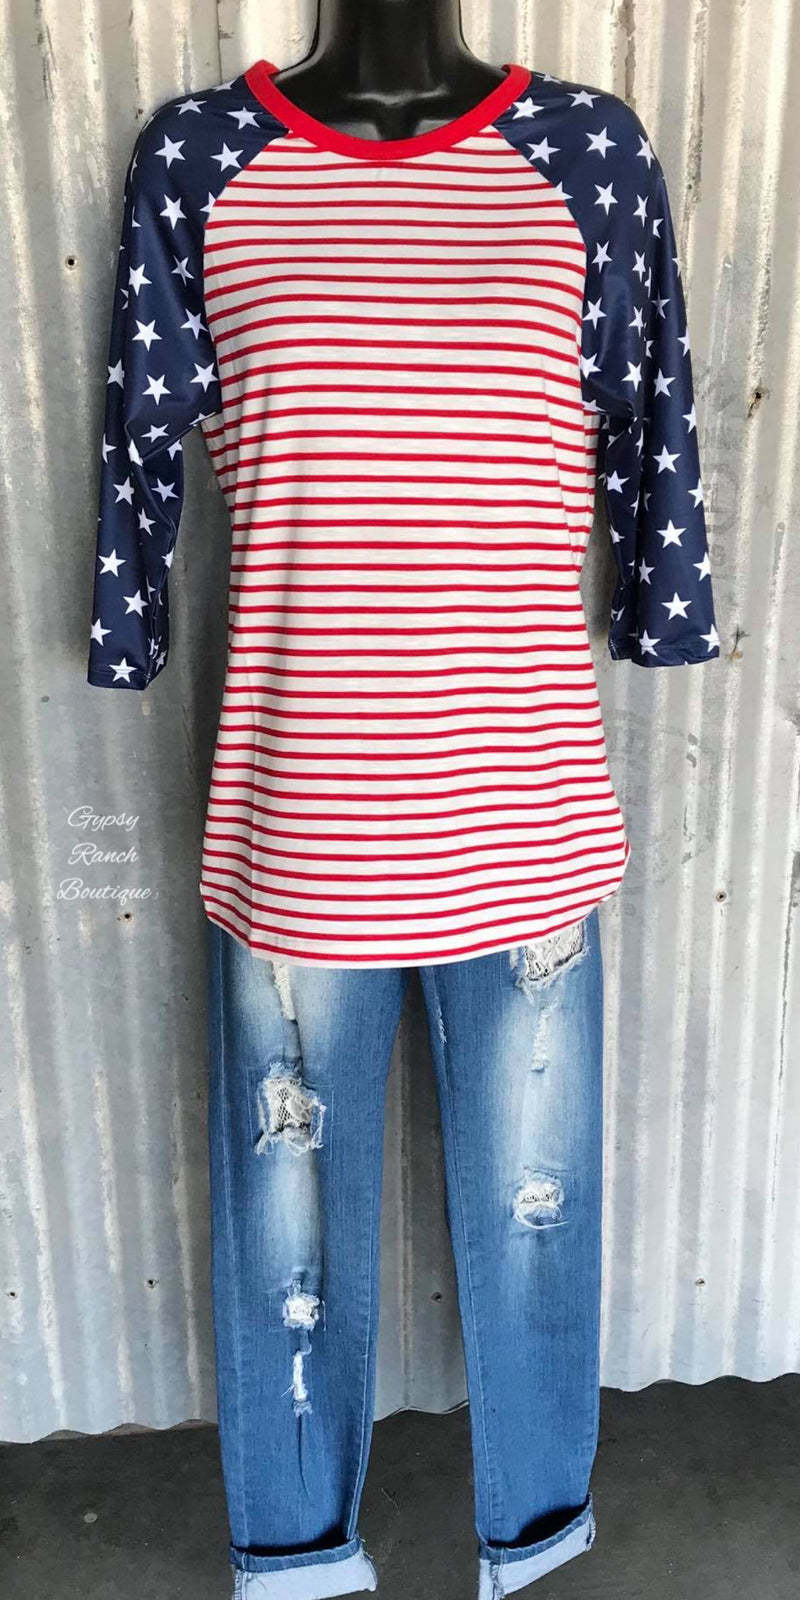 The Stars & Stripes 3/4 Sleeve Top - Also in Plus Size